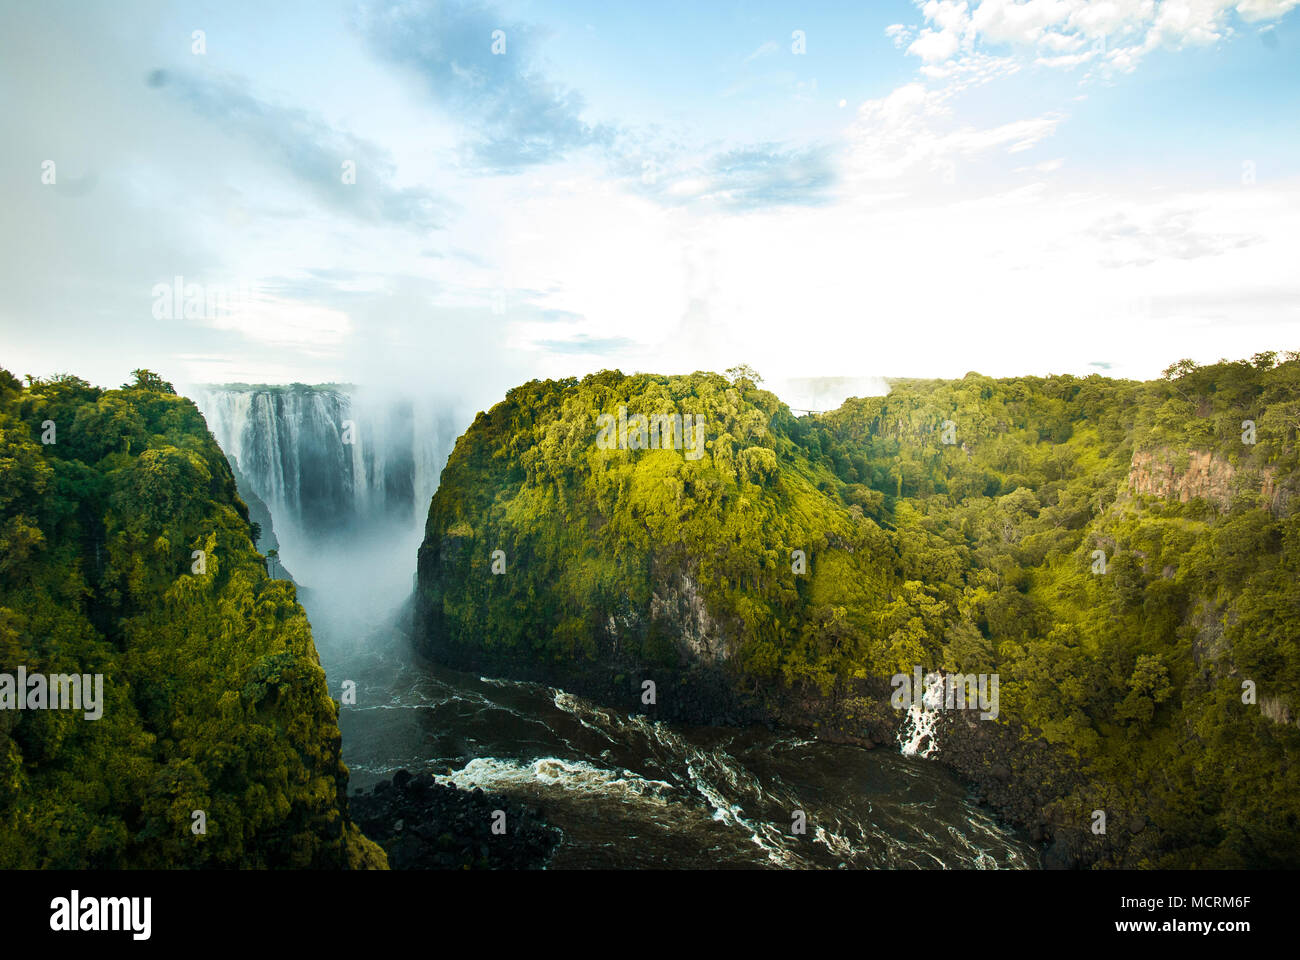 View of the Victoria Falls or Mosi oa Tunya. It is the widest curtain of water in the world and one of the Natural Wonders. - Stock Image